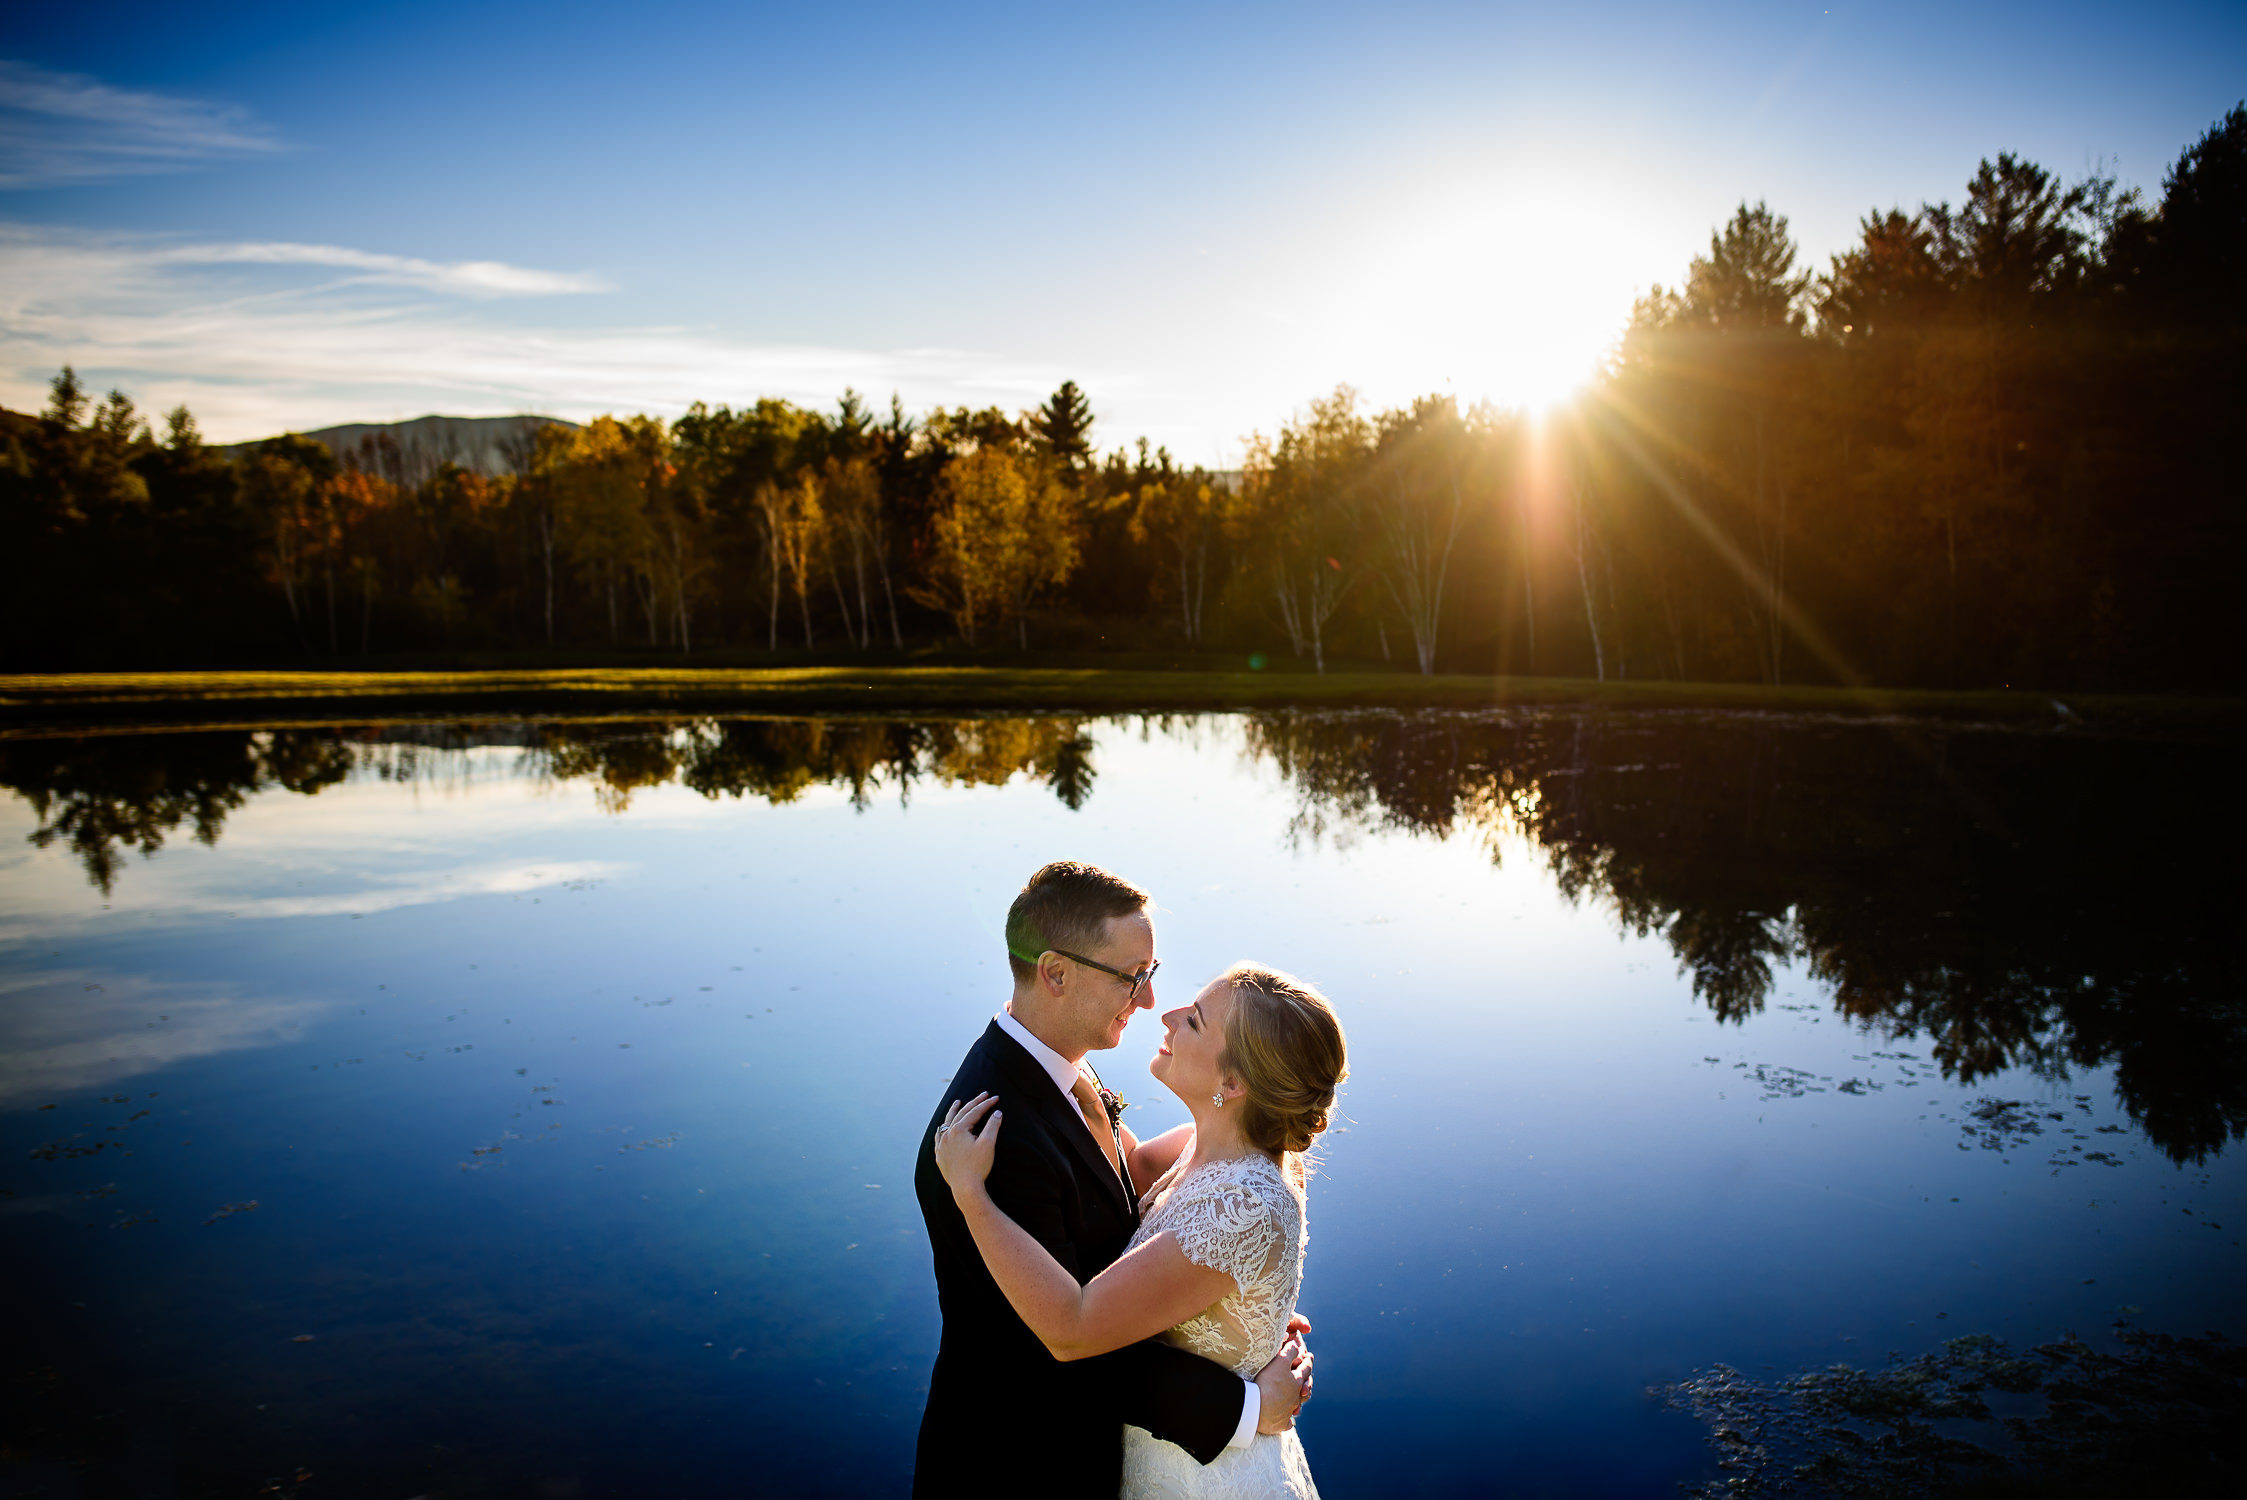 Barrows House Wedding in Dorset;Foliage;Pond;Sunset Wedding Portrait;Vermont wedding photographers